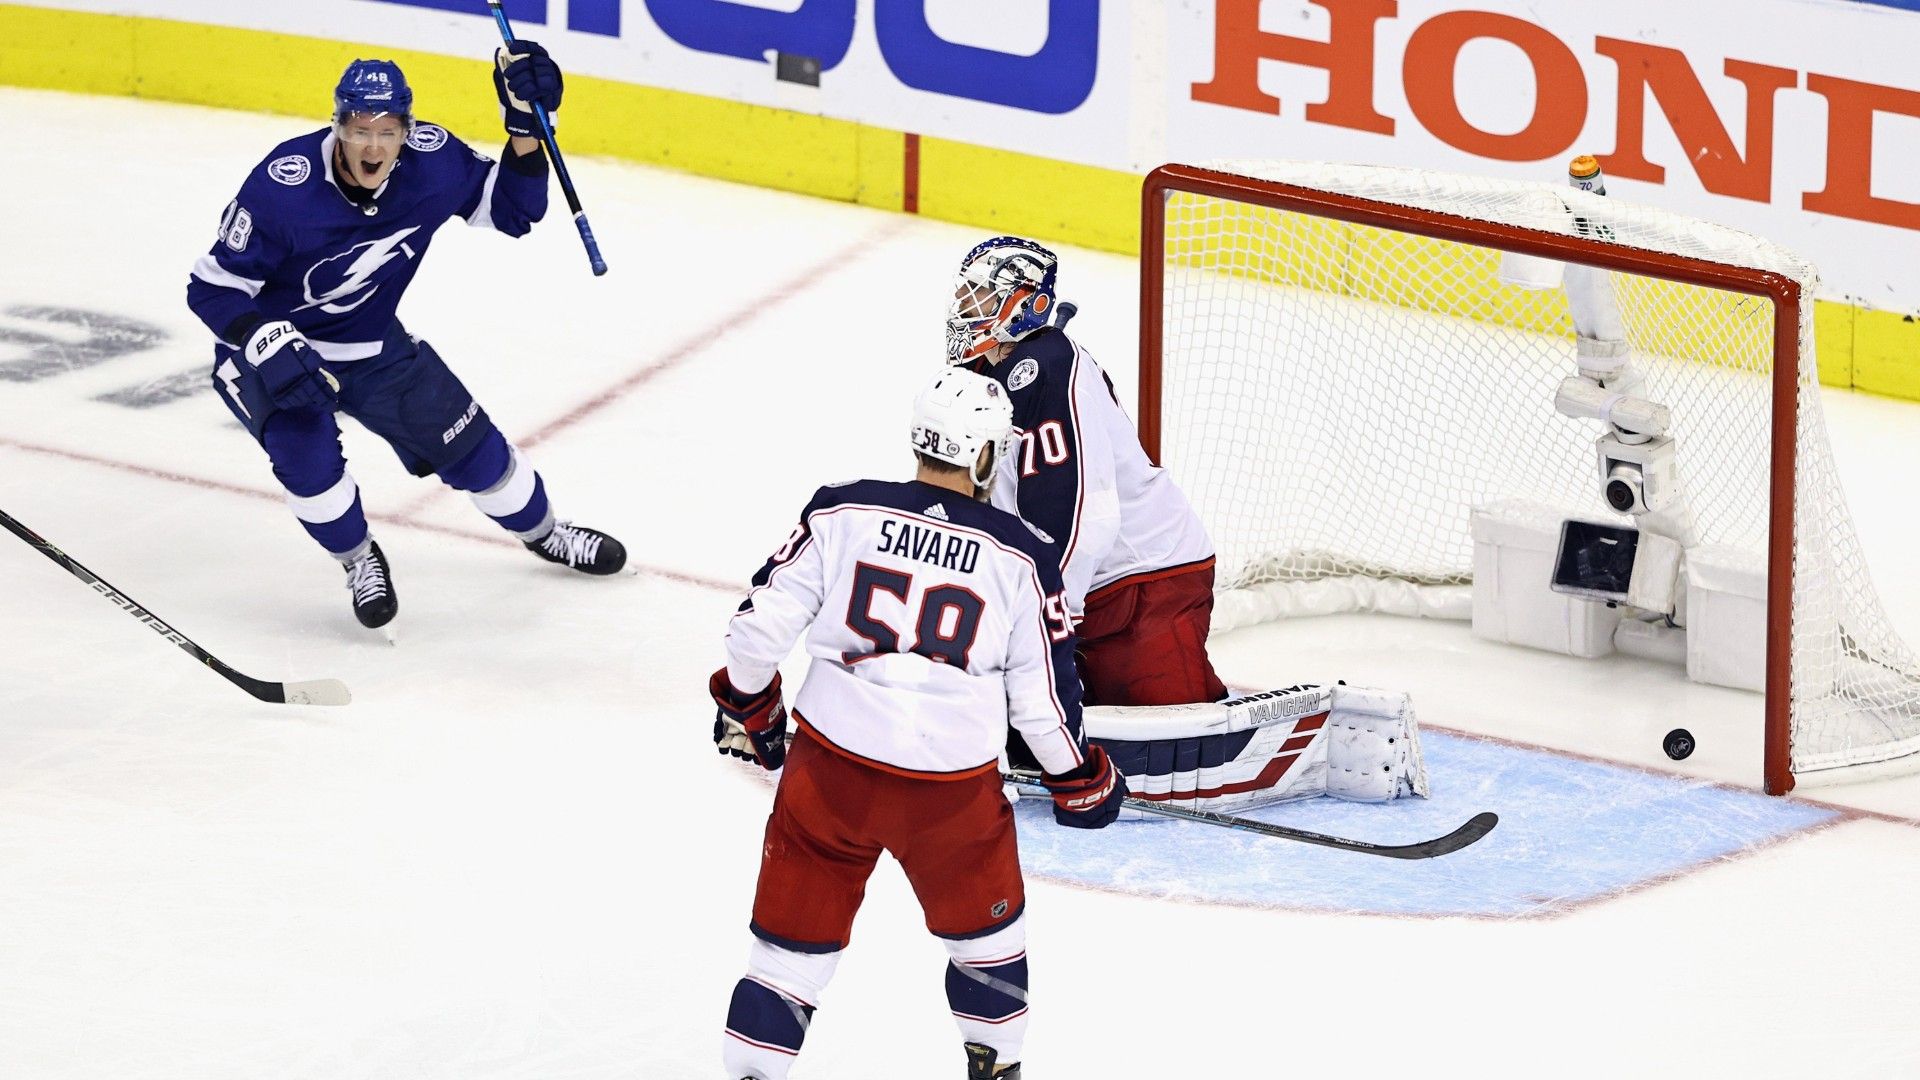 Seth Jones' minutes, Joonas Korpisalo's saves & more crazy numbers from the Lightning-Blue Jackets 5-OT thriller 1